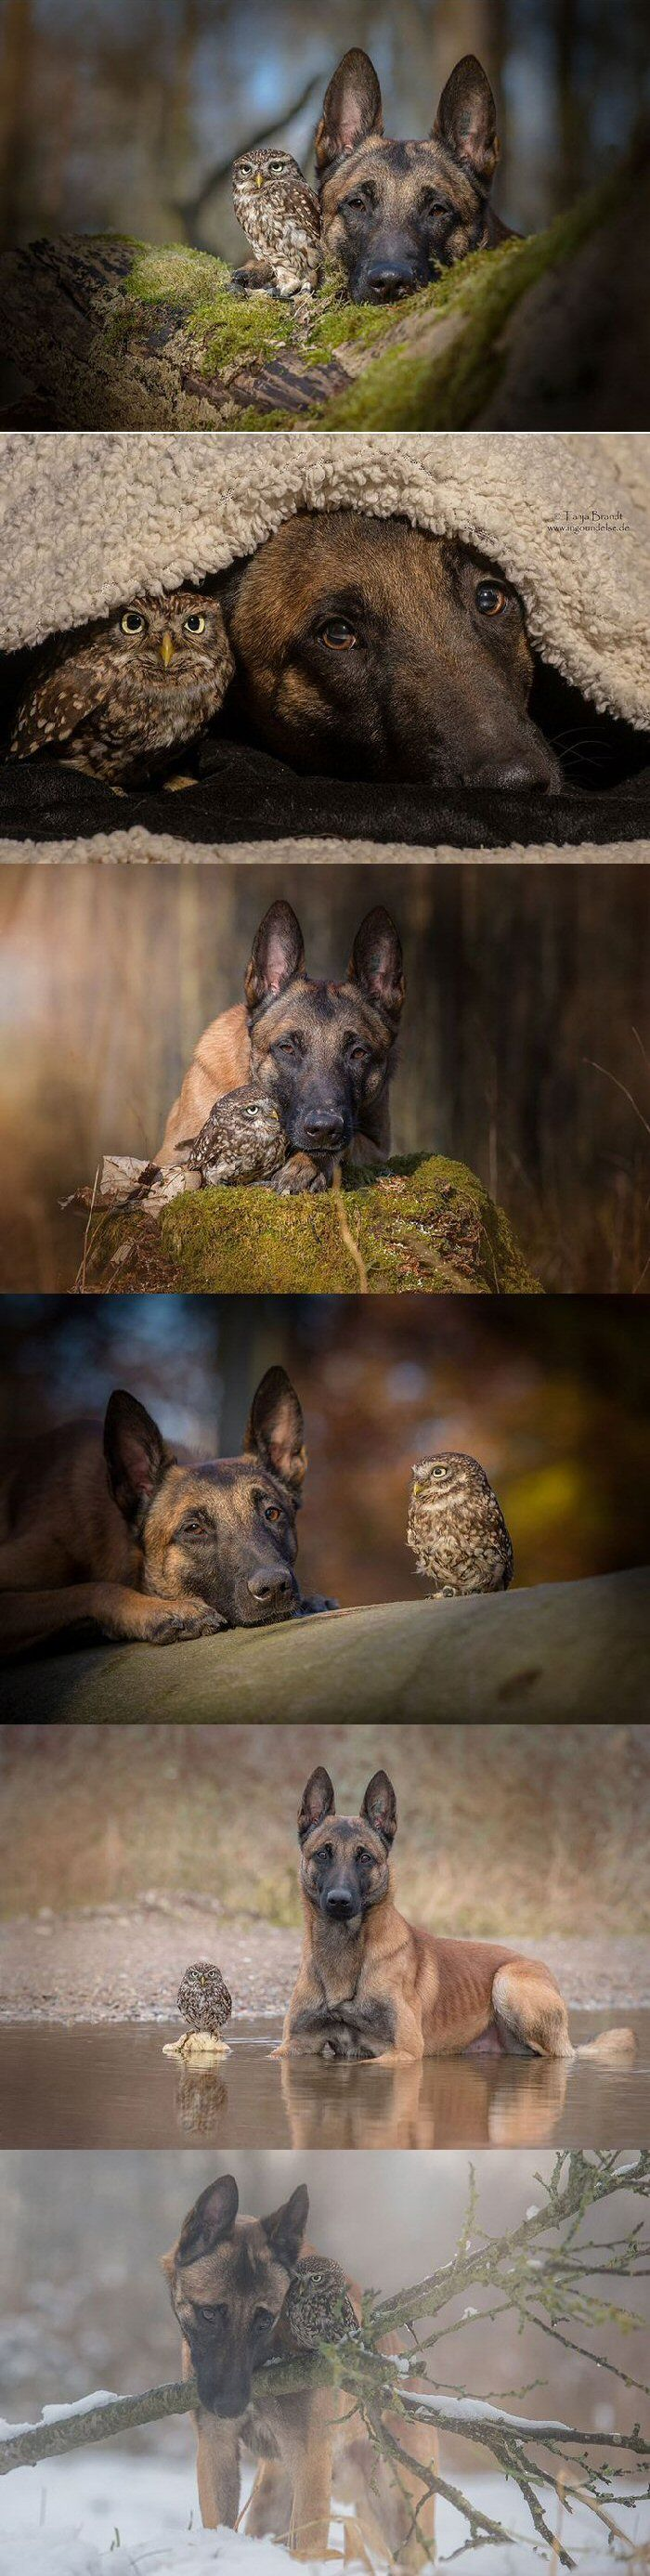 Ingo the Shepherd and Poldi the Owl (dog, owl)